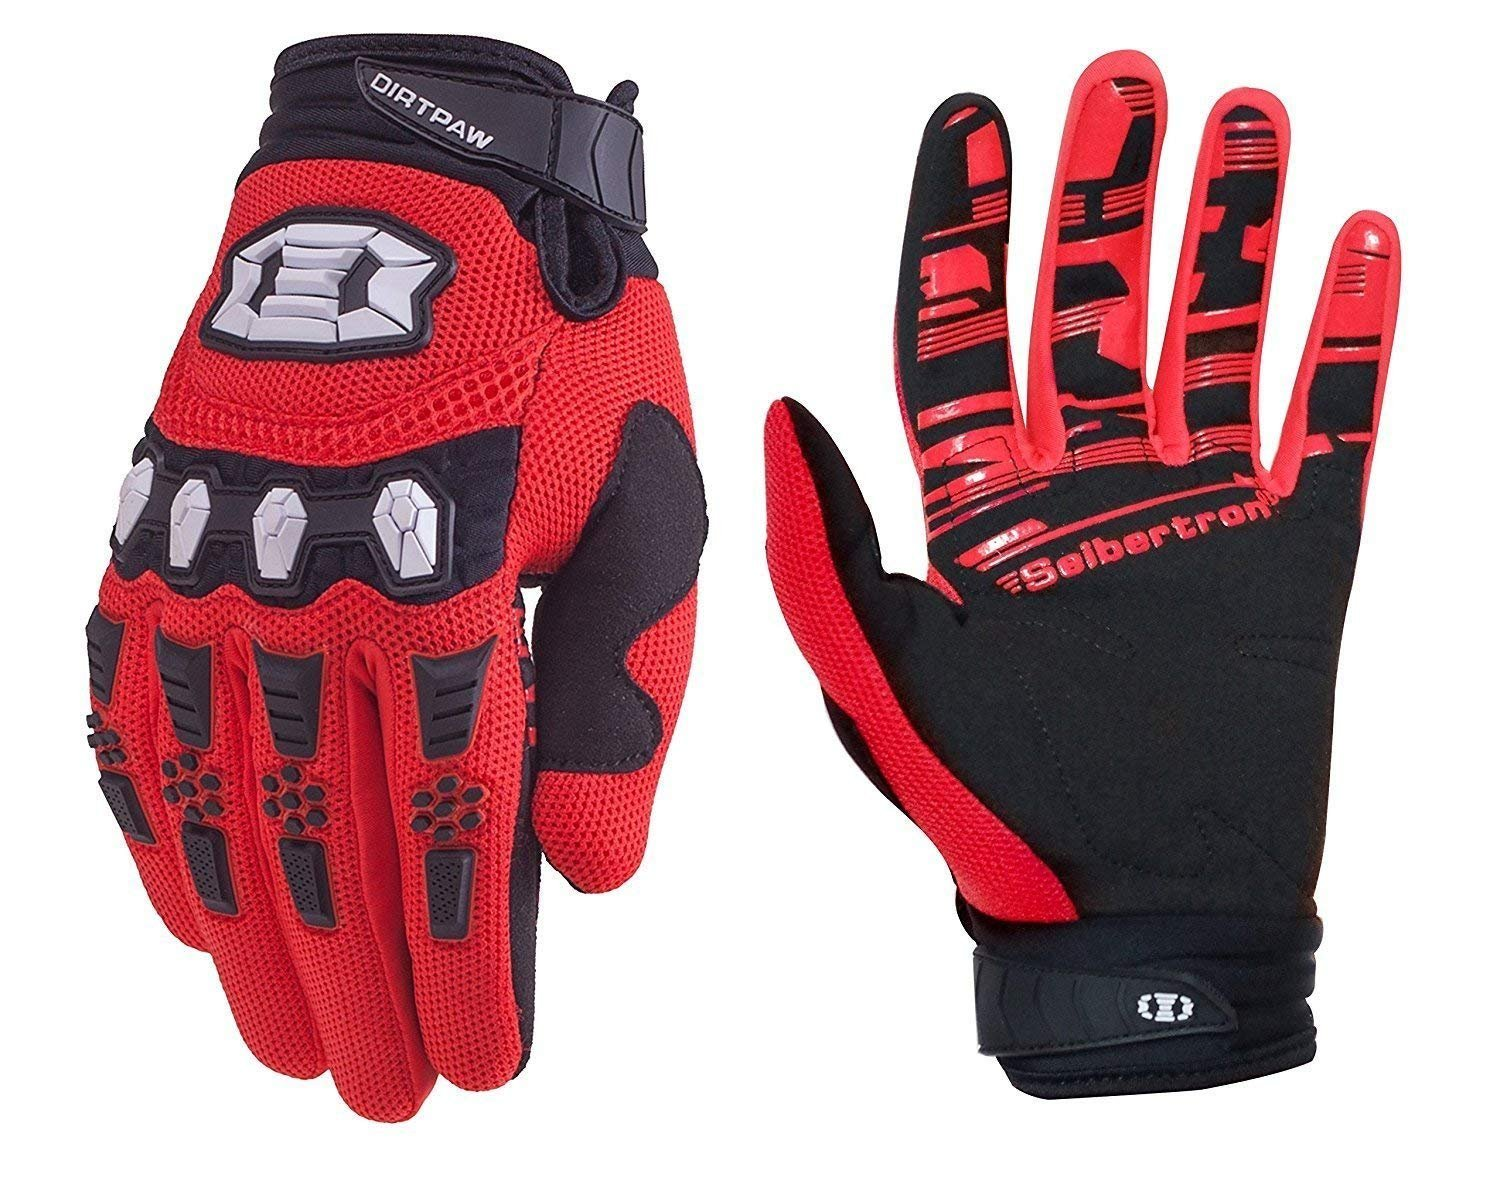 Seibertron Dirtpaw Unisex BMX MX ATV MTB Racing Mountain Bike Bicycle Cycling Off-road/Dirt bike Gloves Road Racing Motorcycle Motocross Sports Gloves Touch Recognition Full Finger Glove Red XS